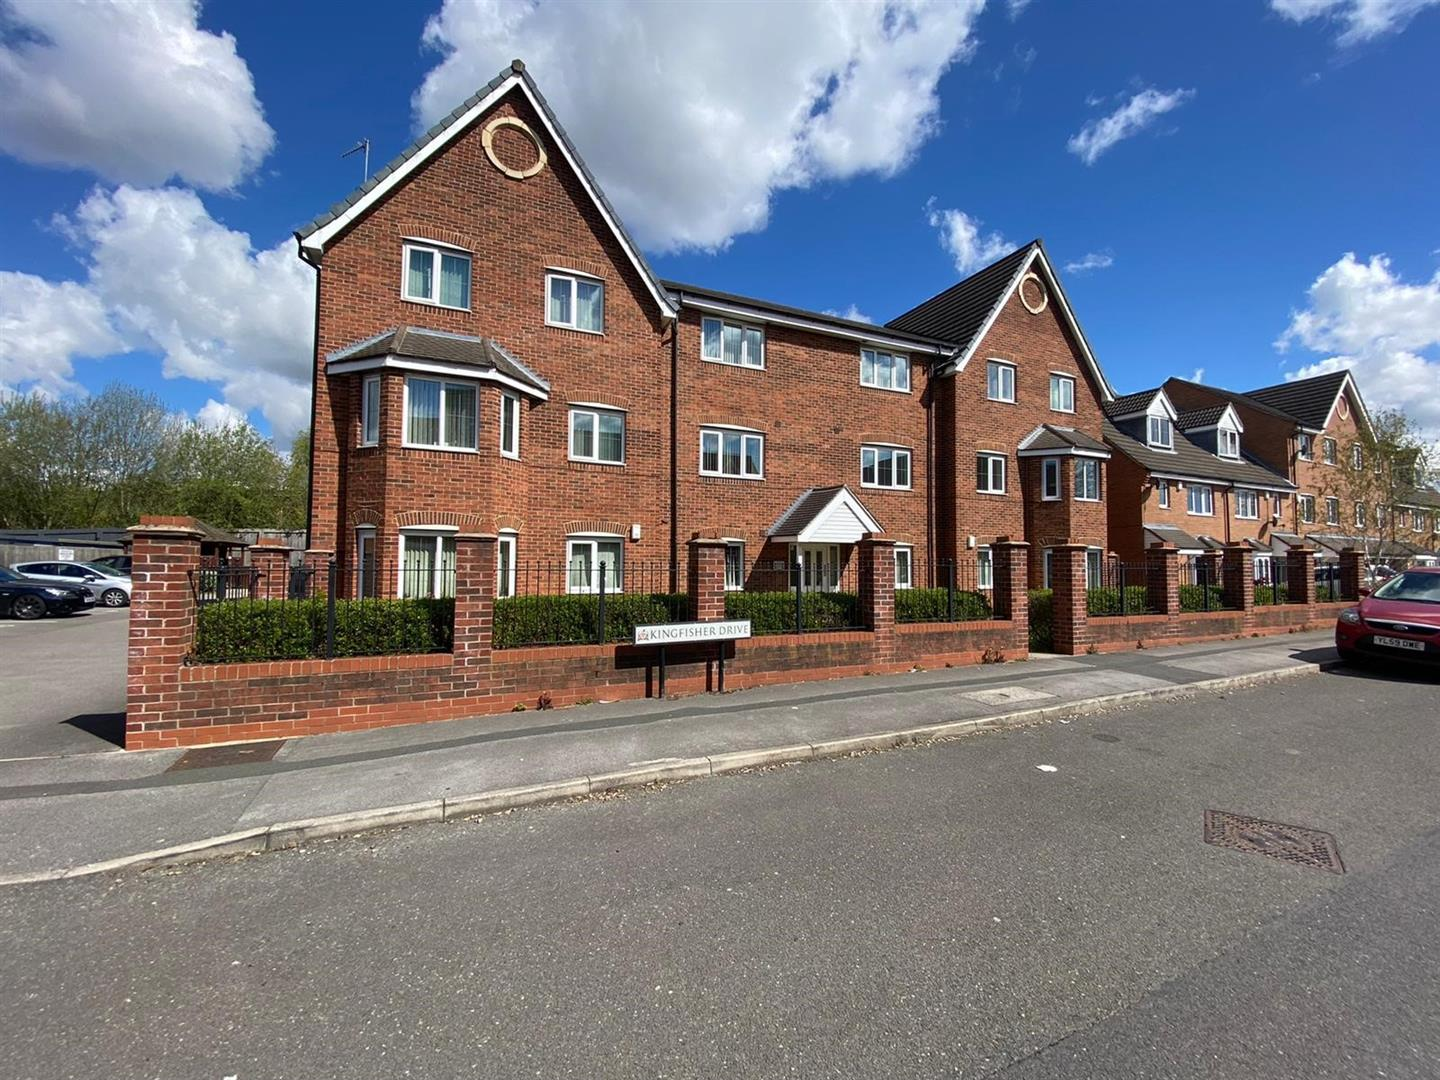 2 Bedroom Block Of Flats For Sale - Main Image